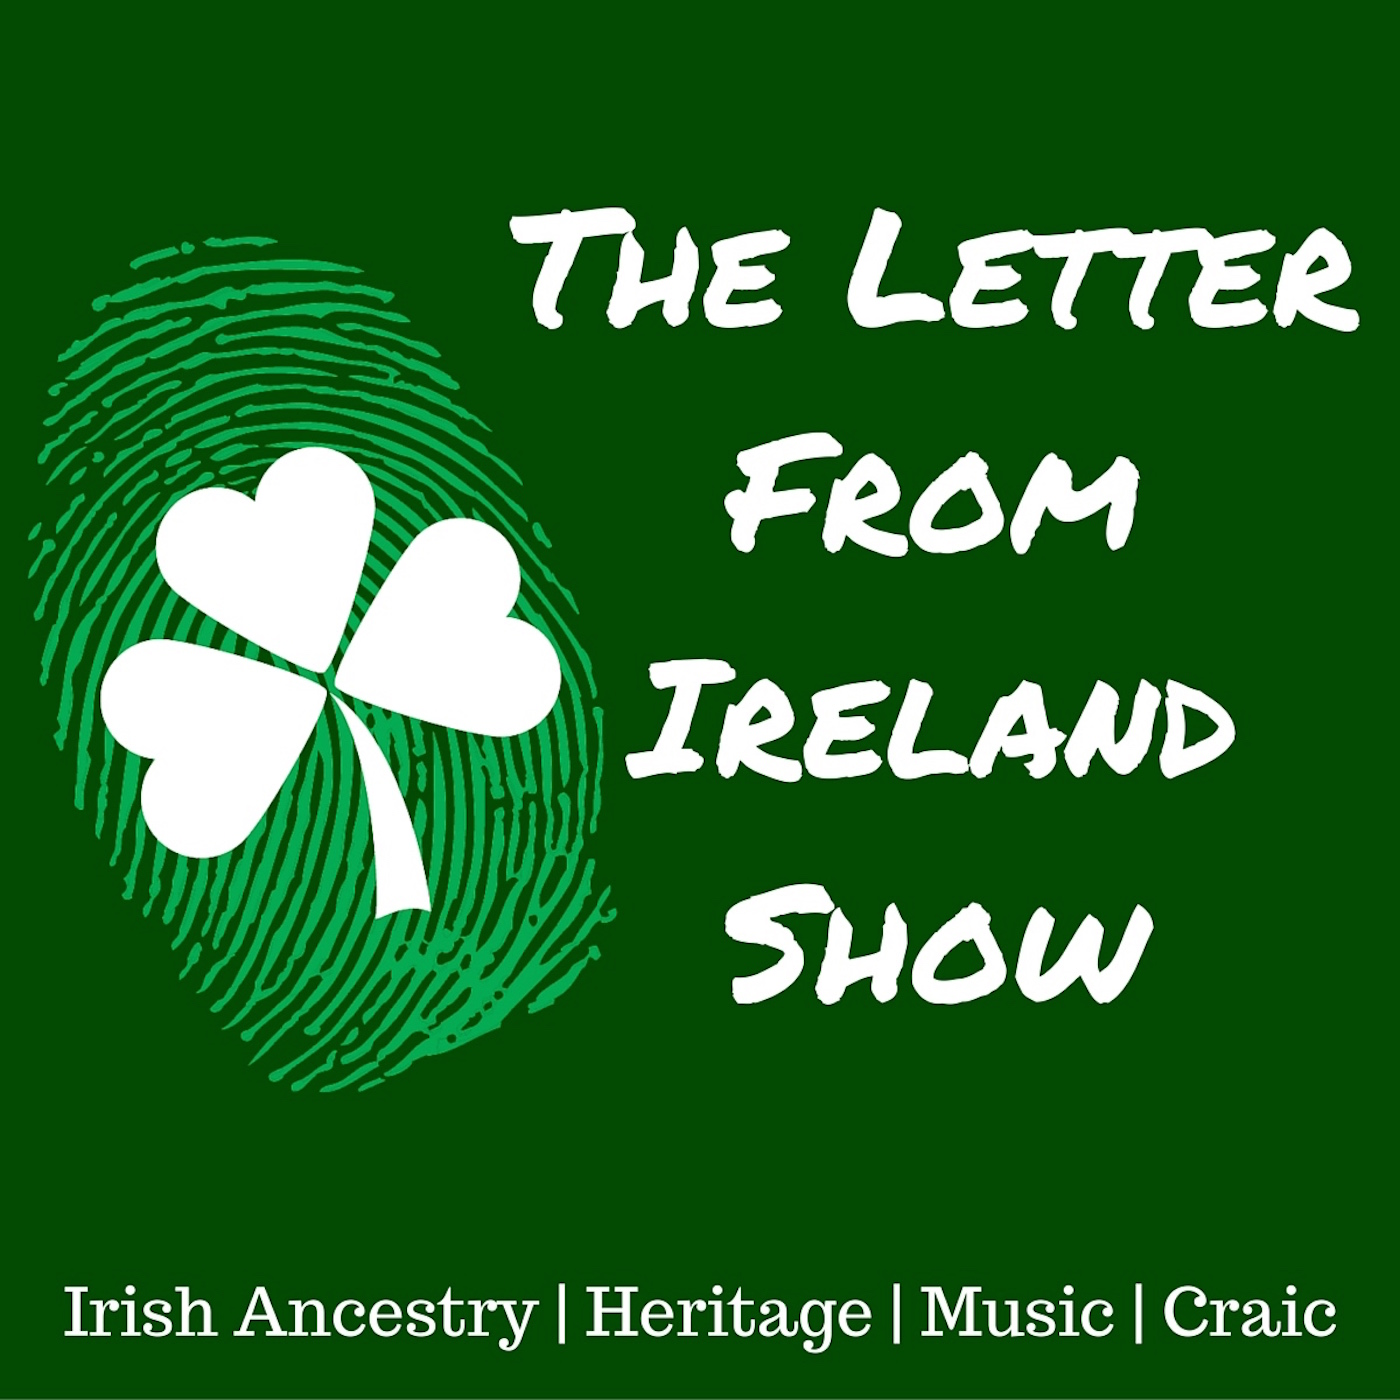 The Letter From Ireland Show